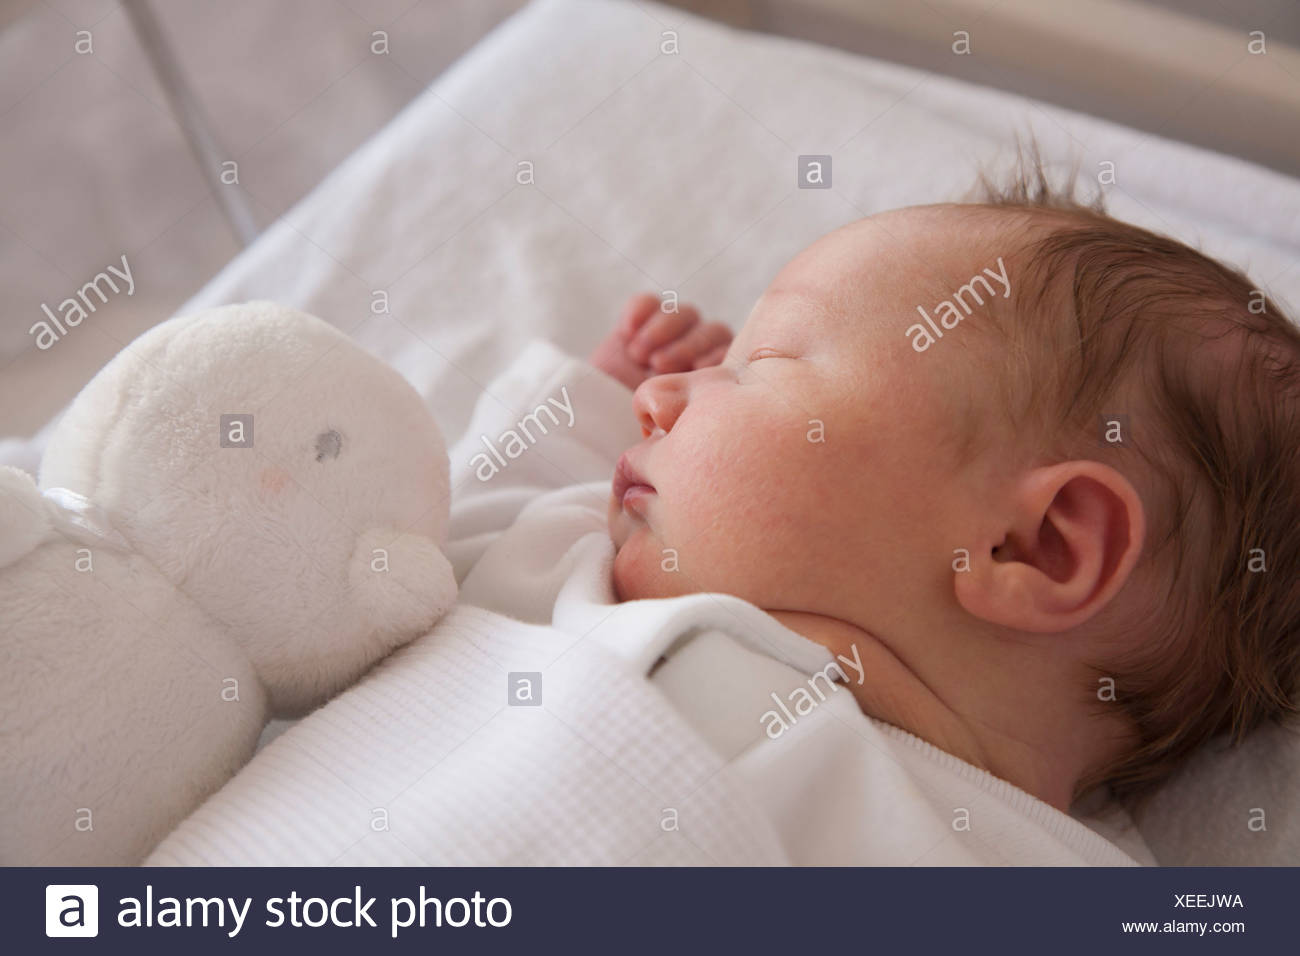 A new born baby lying on her back, sleeping. A toy in his cot. Stock Photo